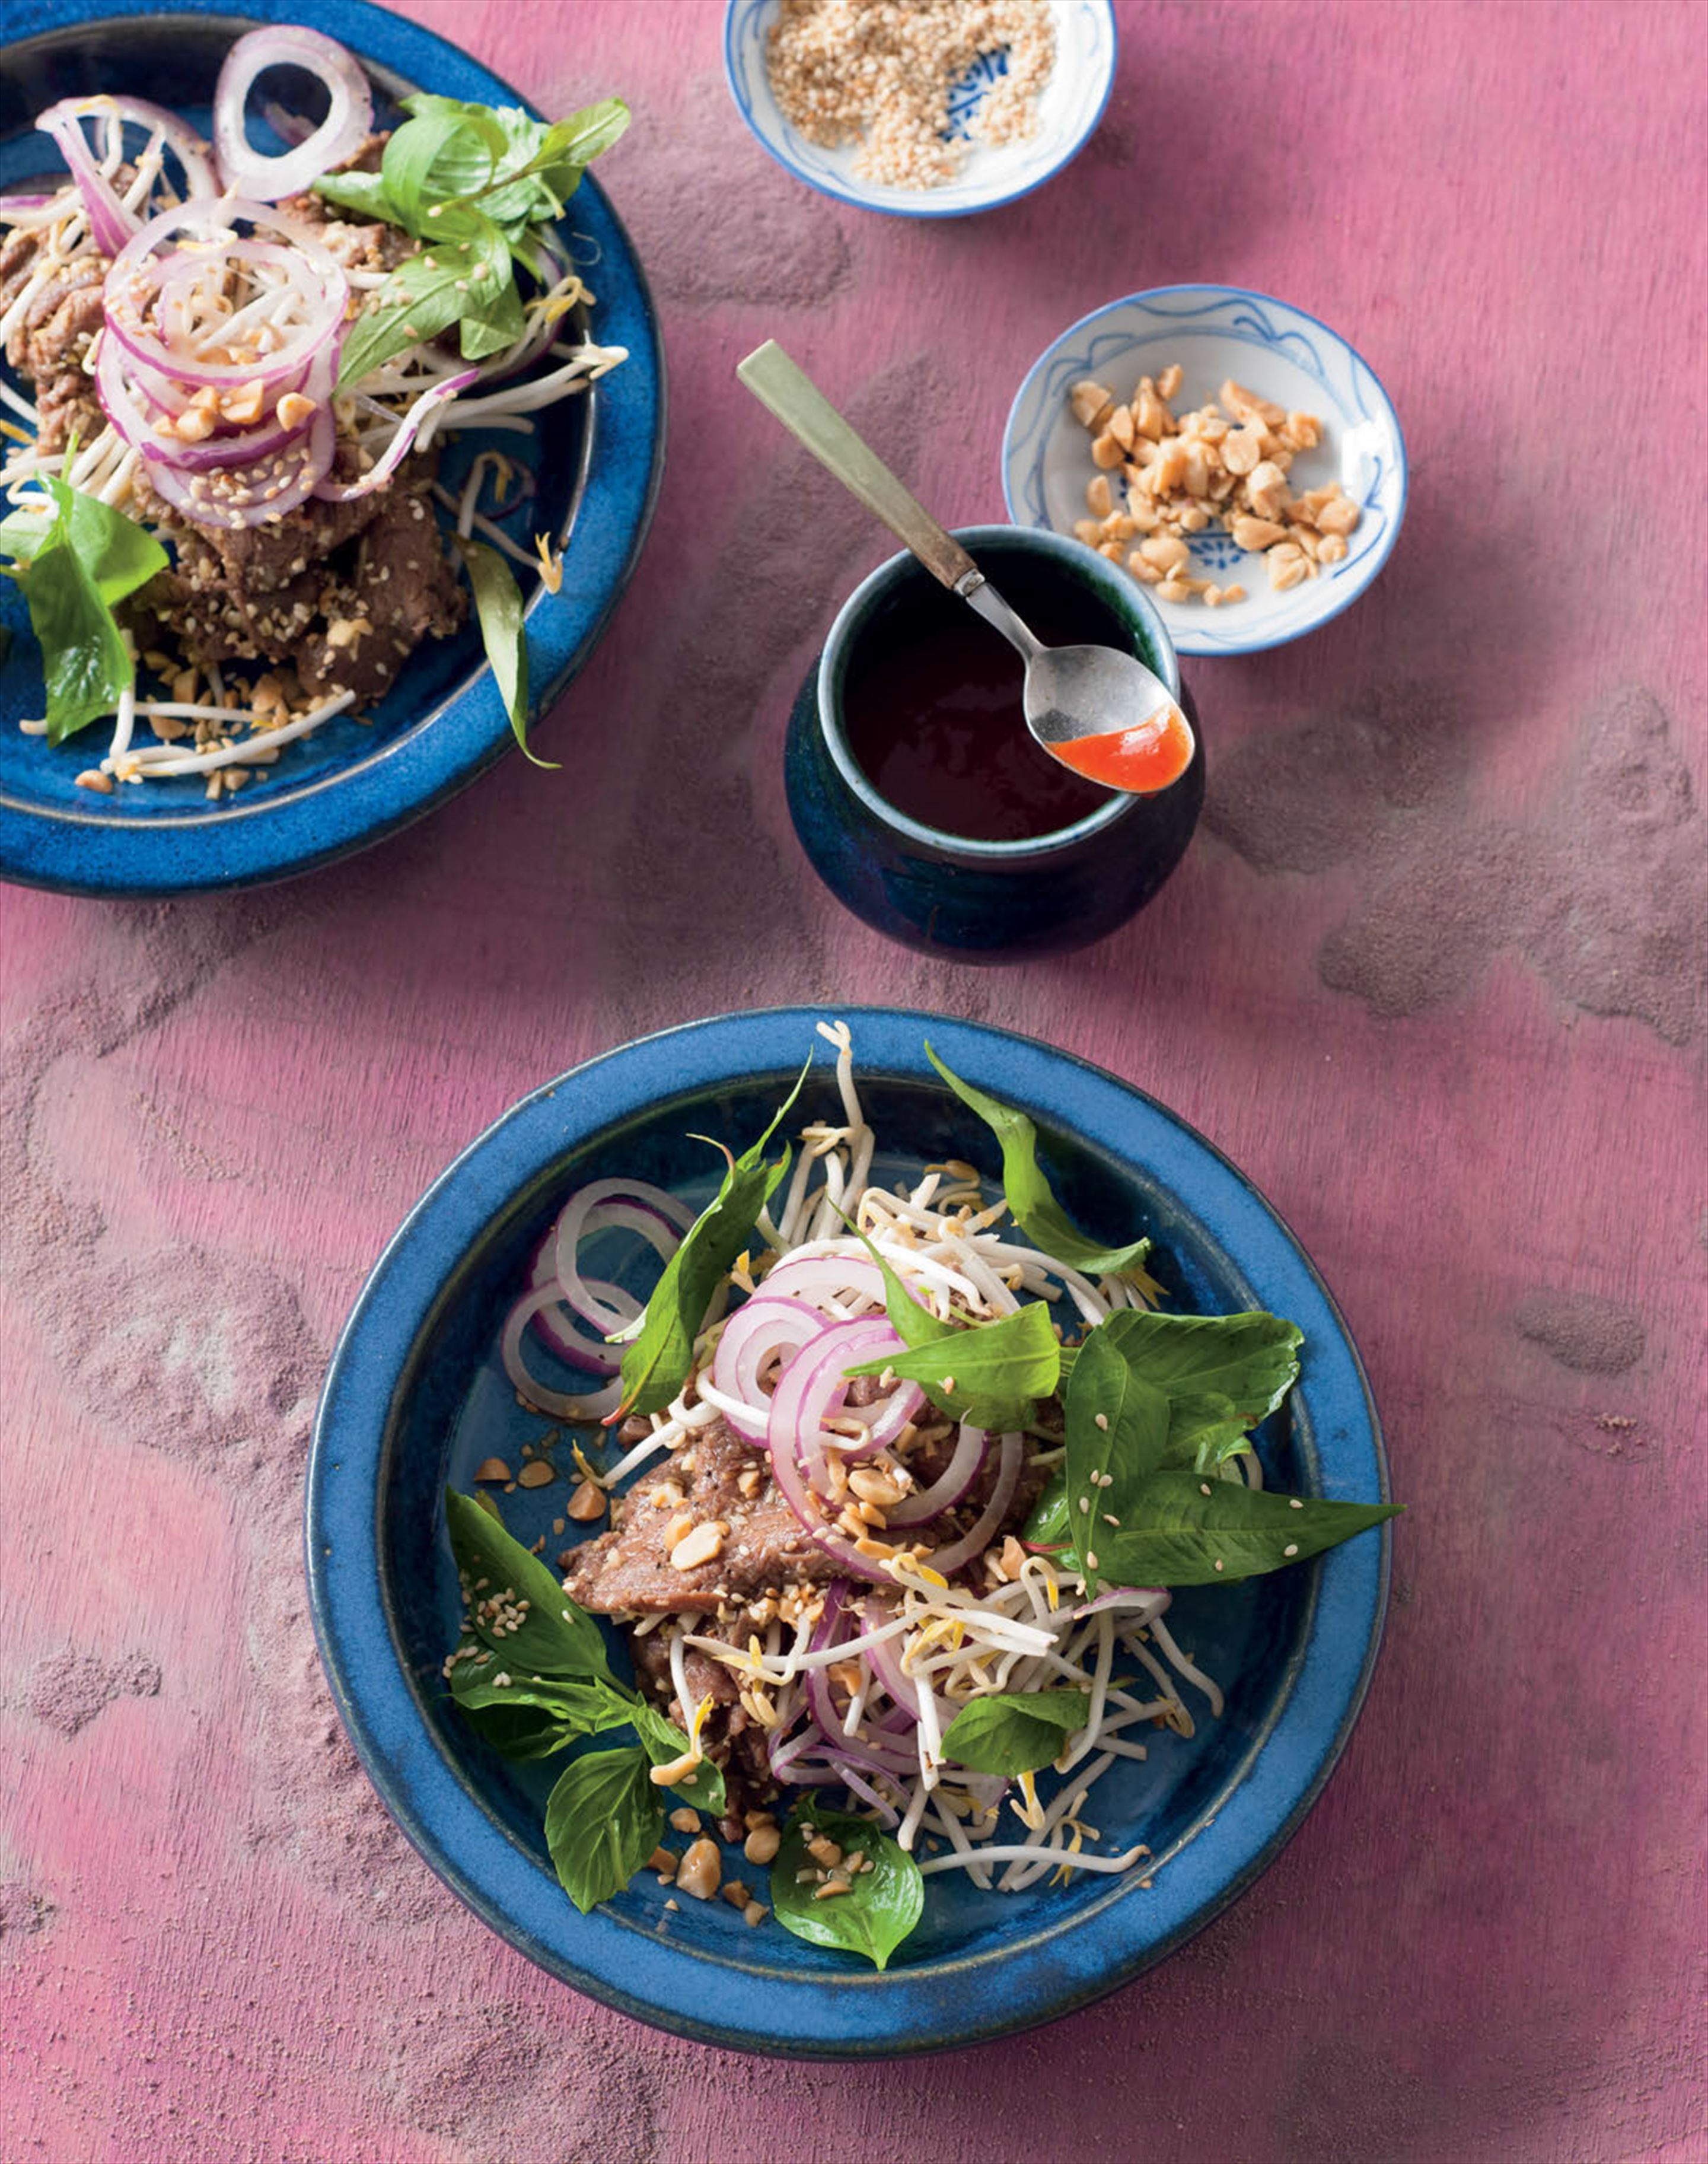 Lime-marinated beef salad